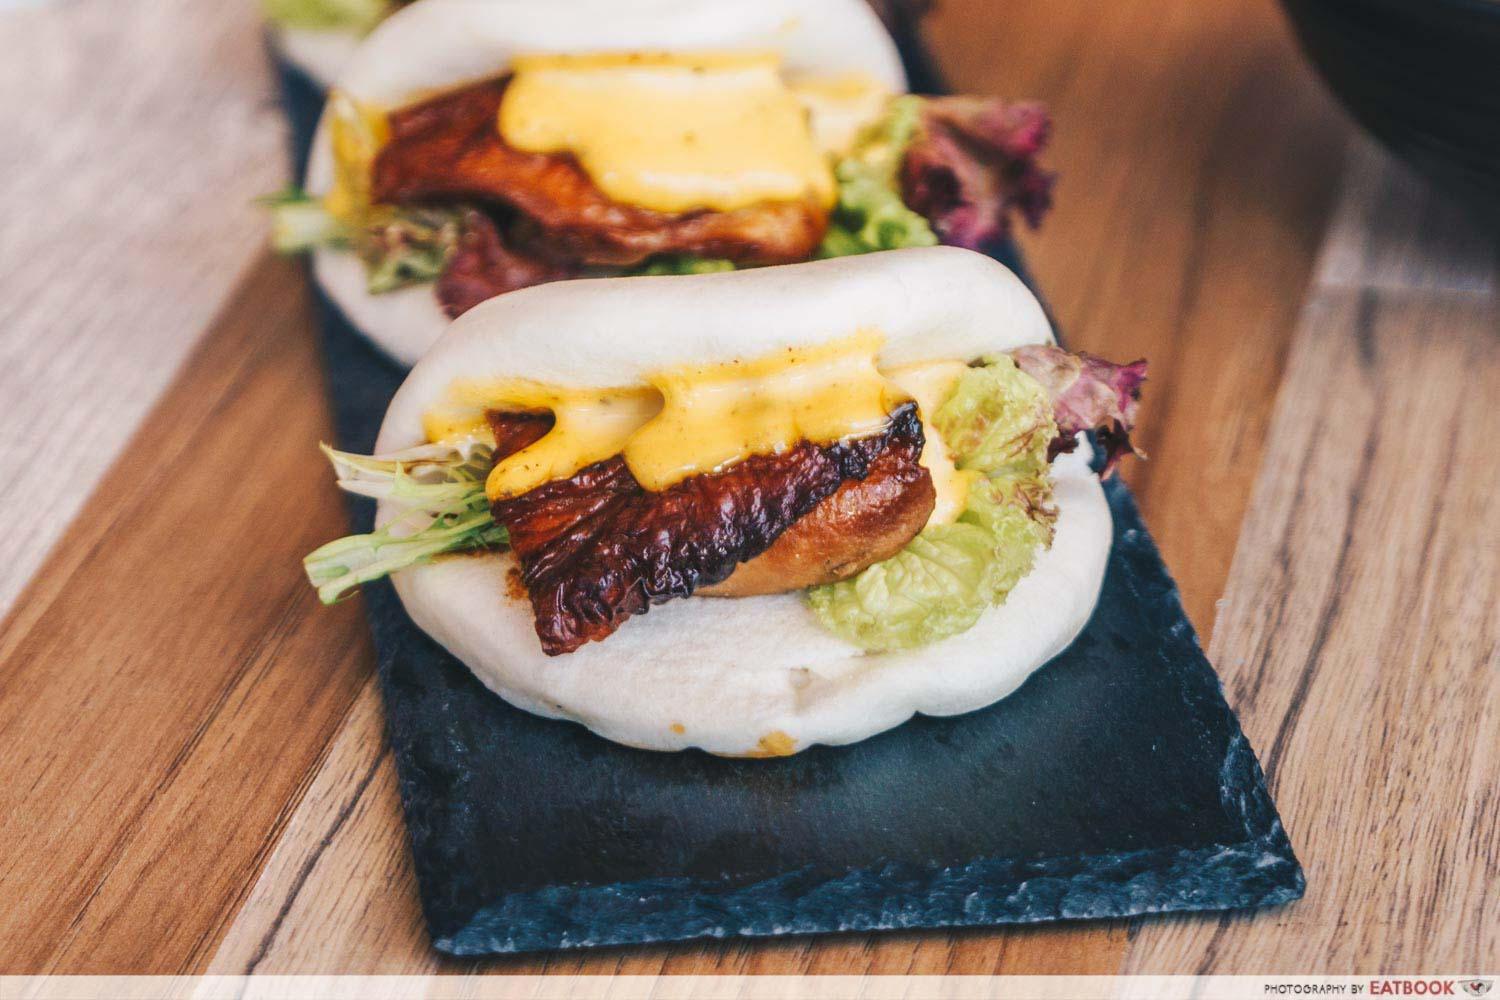 Tsuta New Menu - teriyaki chicekn bao